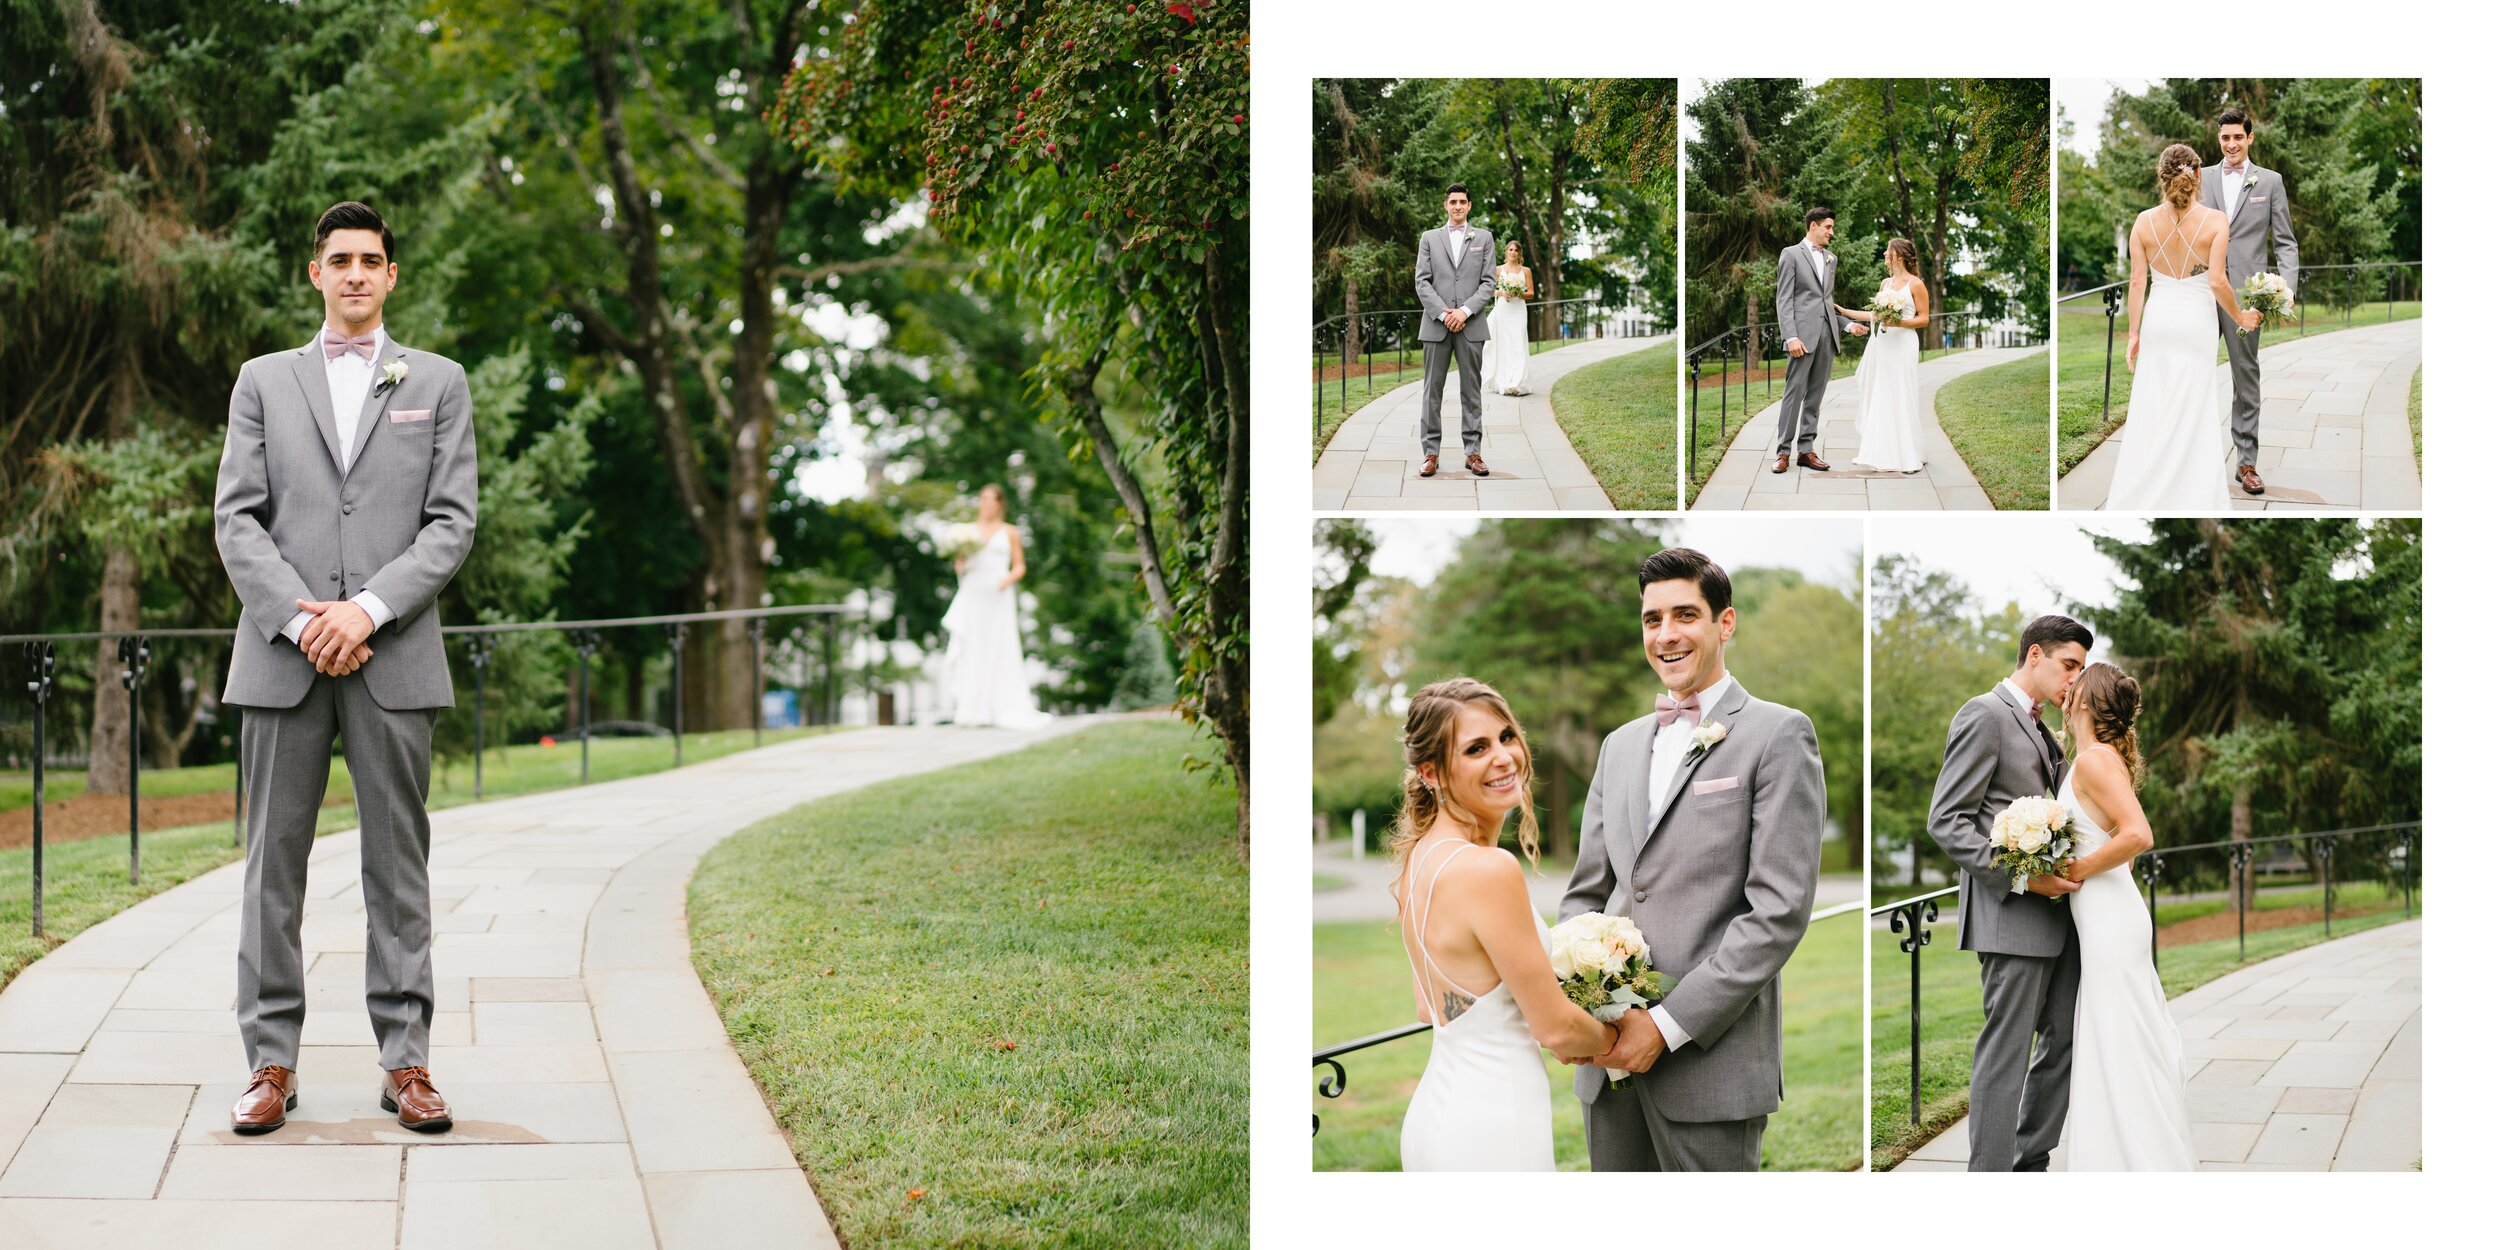 couples first look at wedding at Lounsbury house